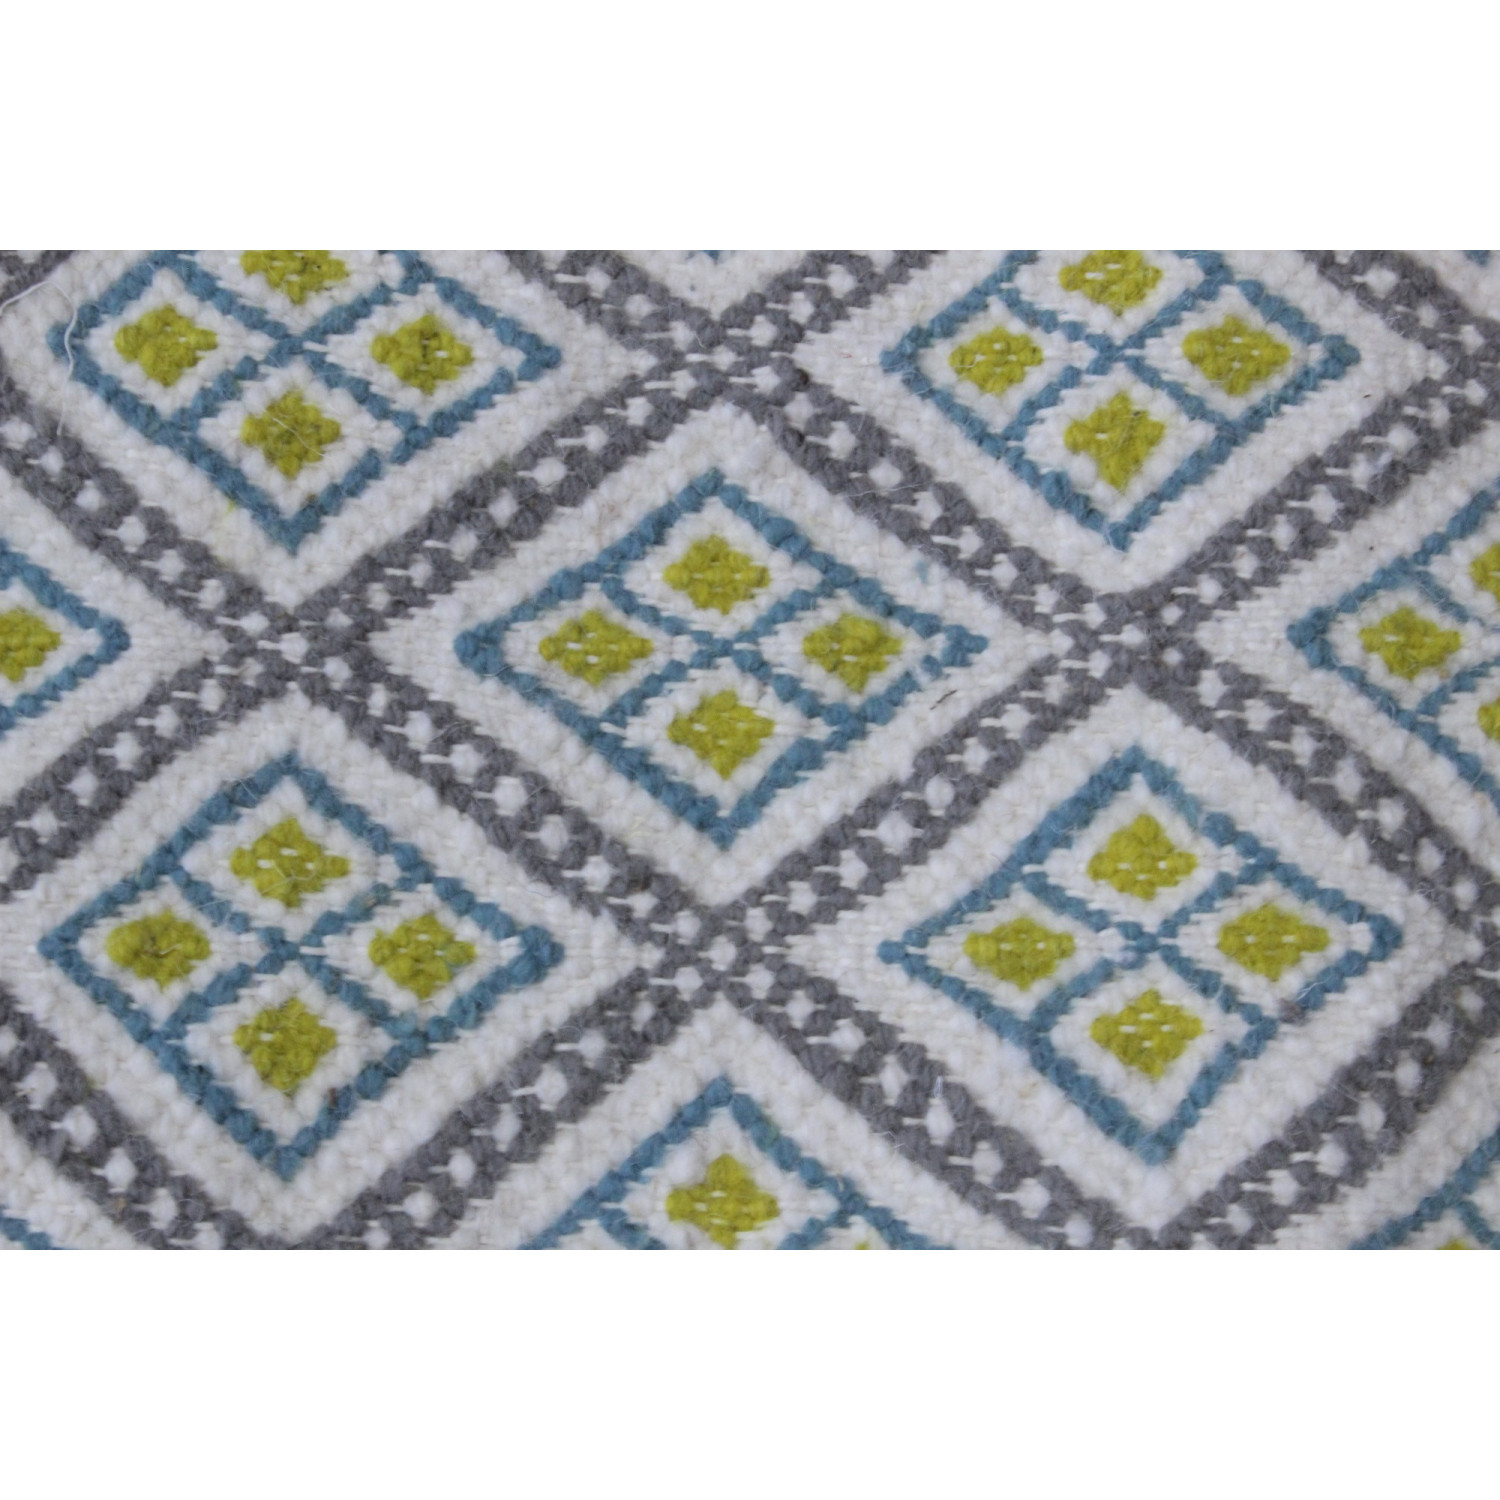 tapis traditionnel motif jaune et bleu. Black Bedroom Furniture Sets. Home Design Ideas